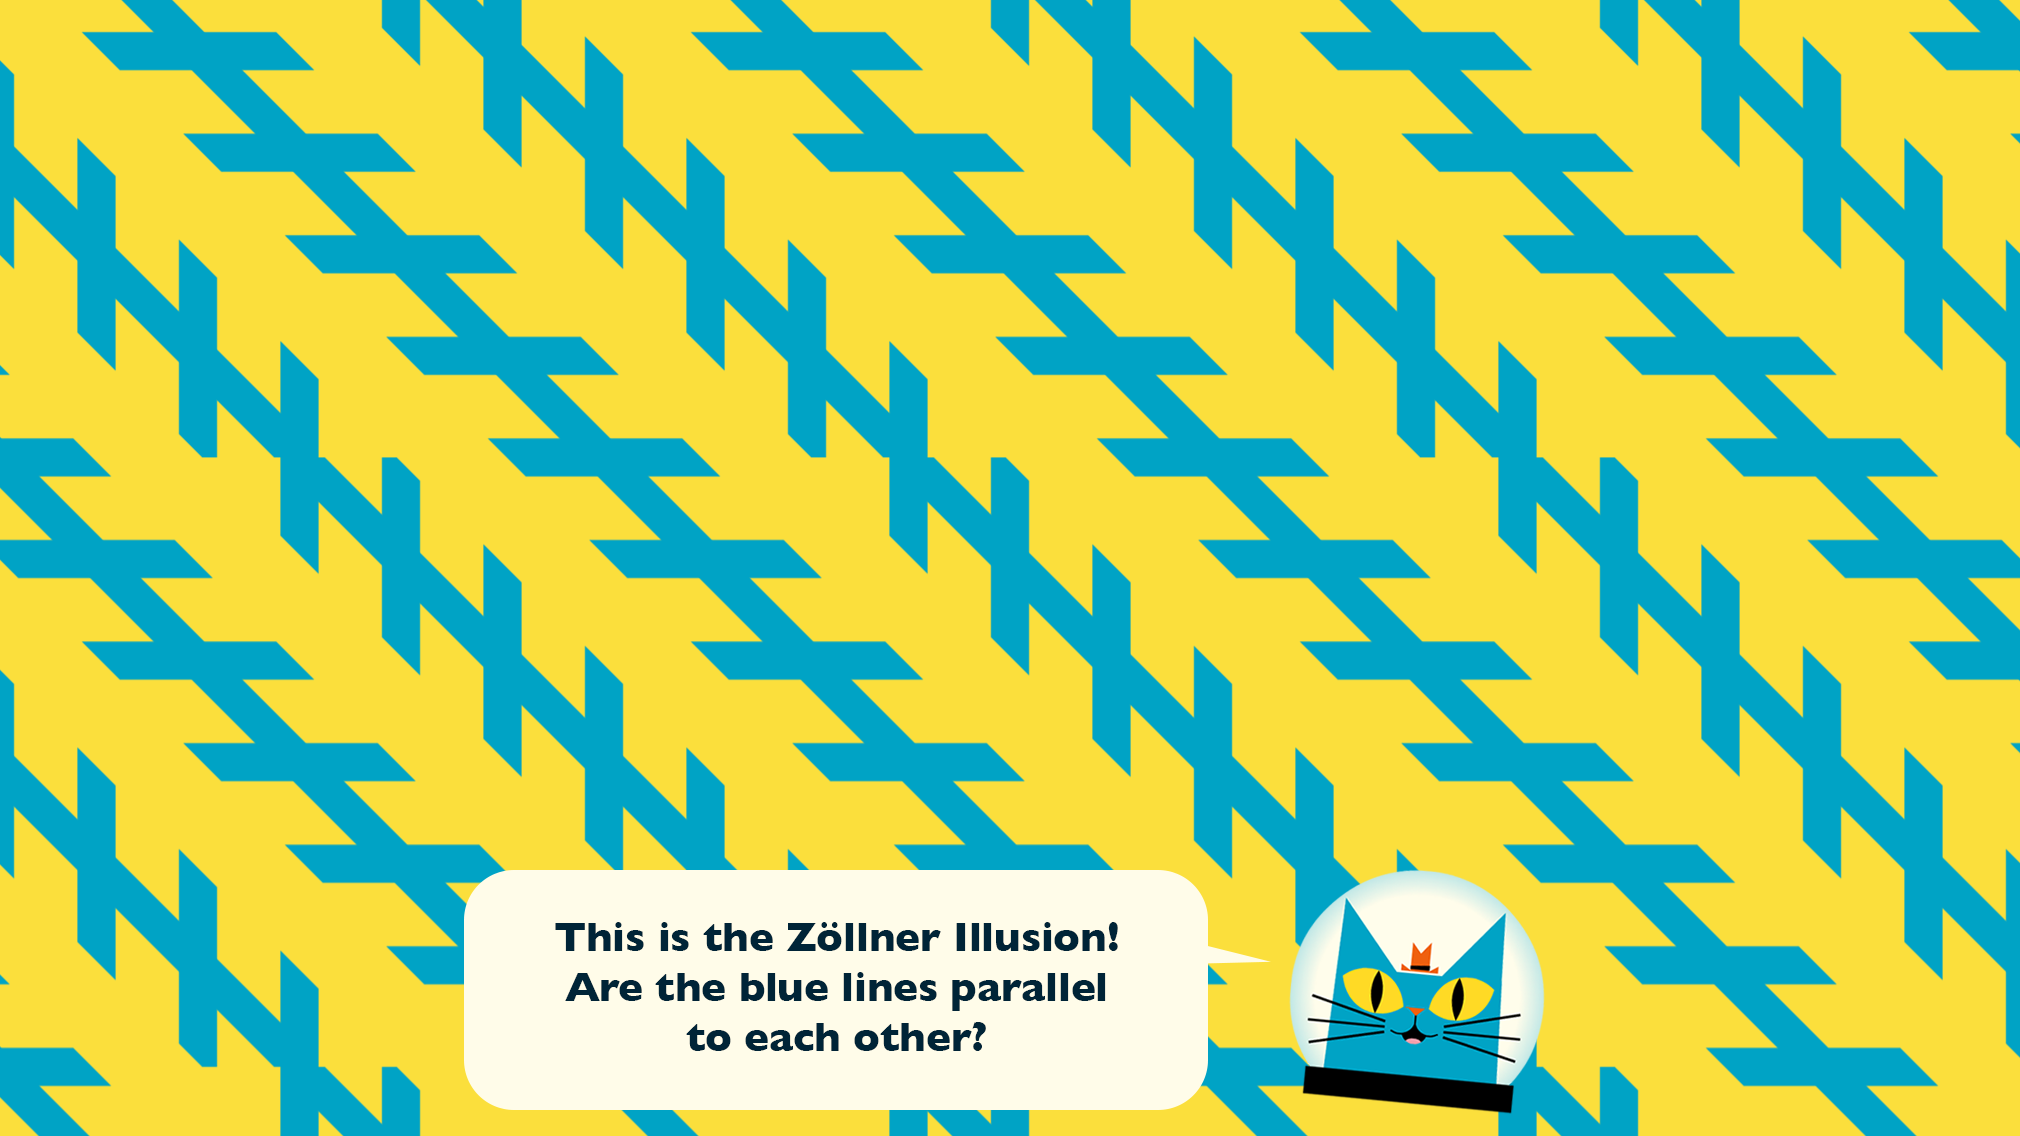 Zollner Optical Illusions